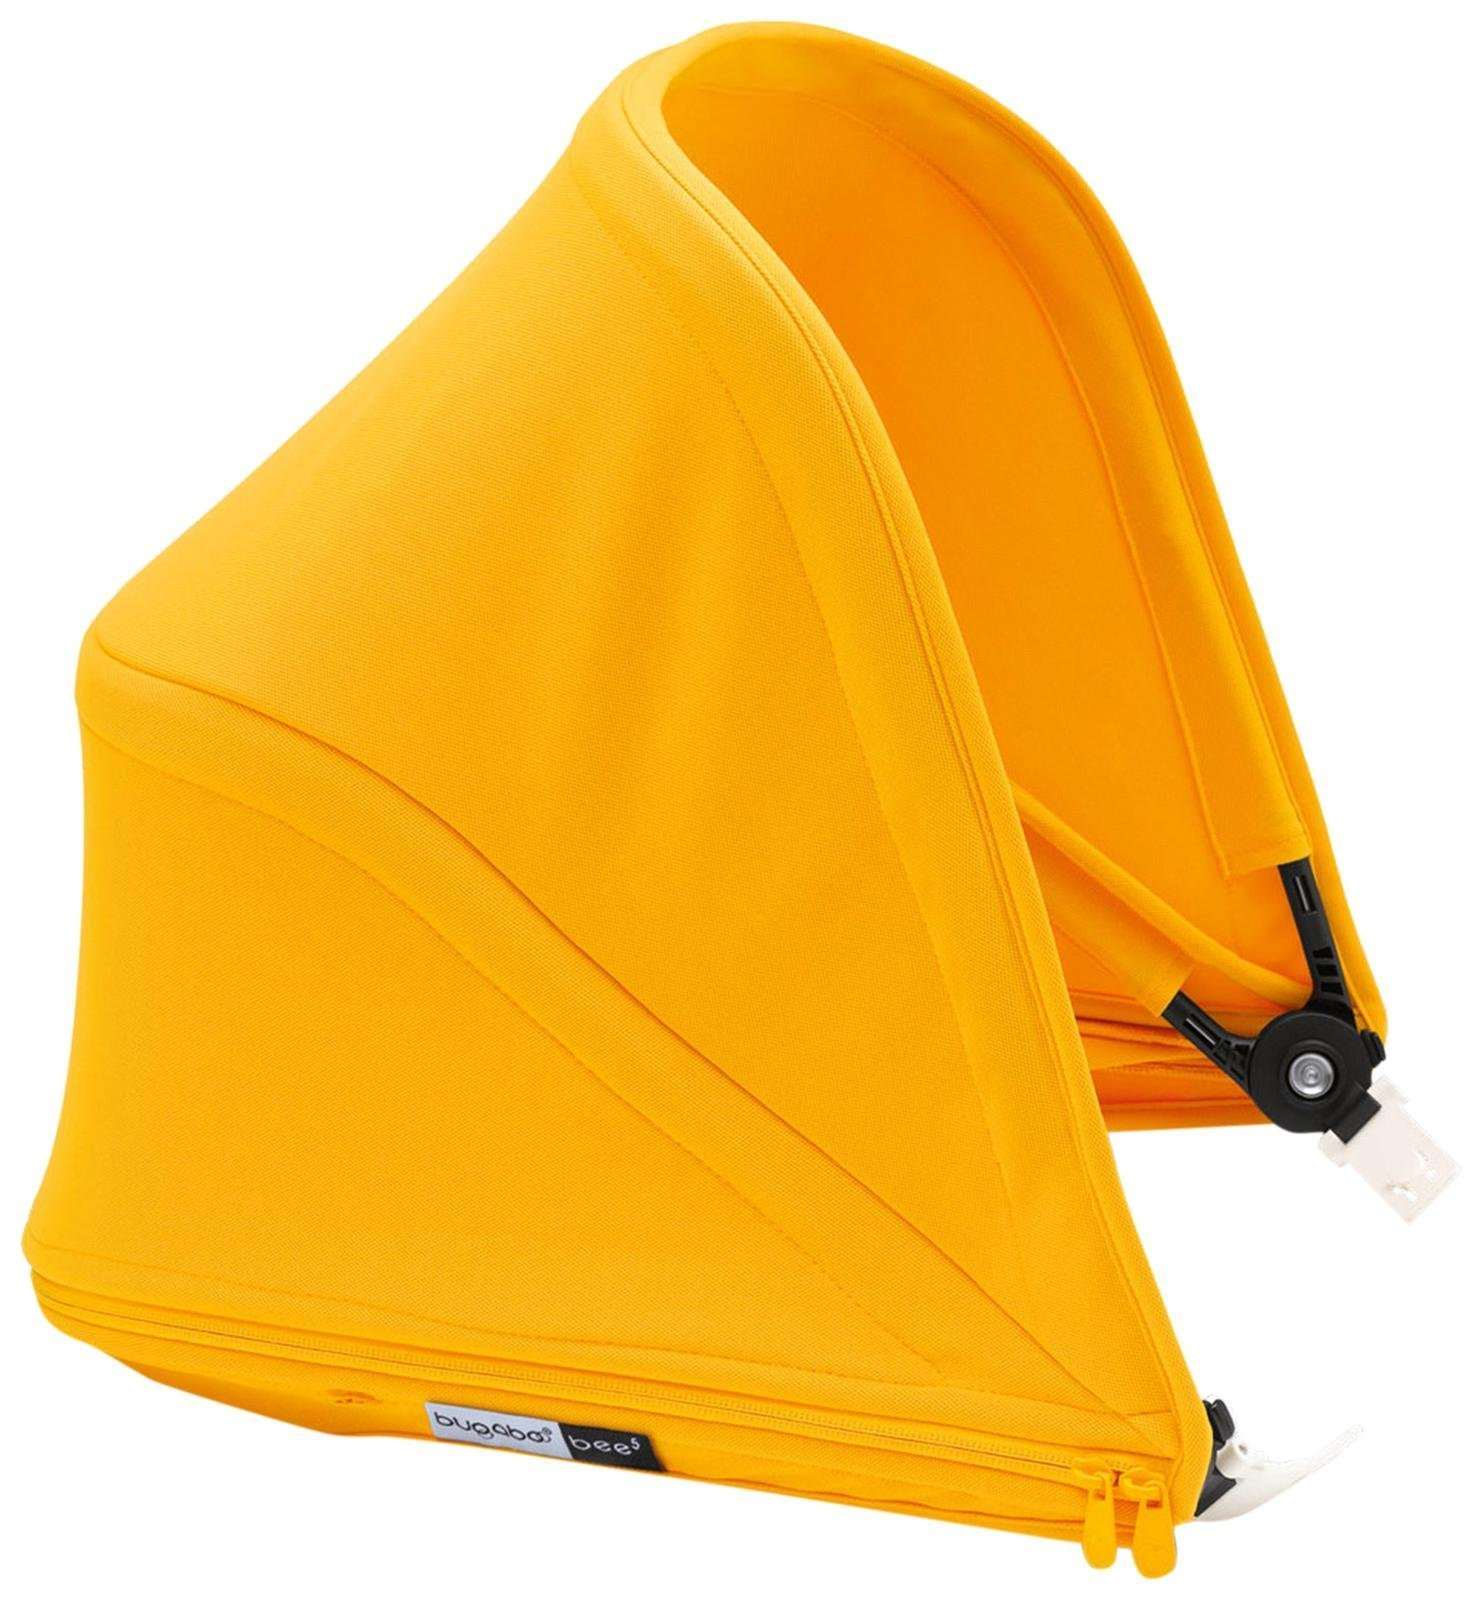 Bugaboo Bee5 Sun Canopy, Sunrise Yellow - Extendable Sun Shade for Full Weather Protection, Machine Washable